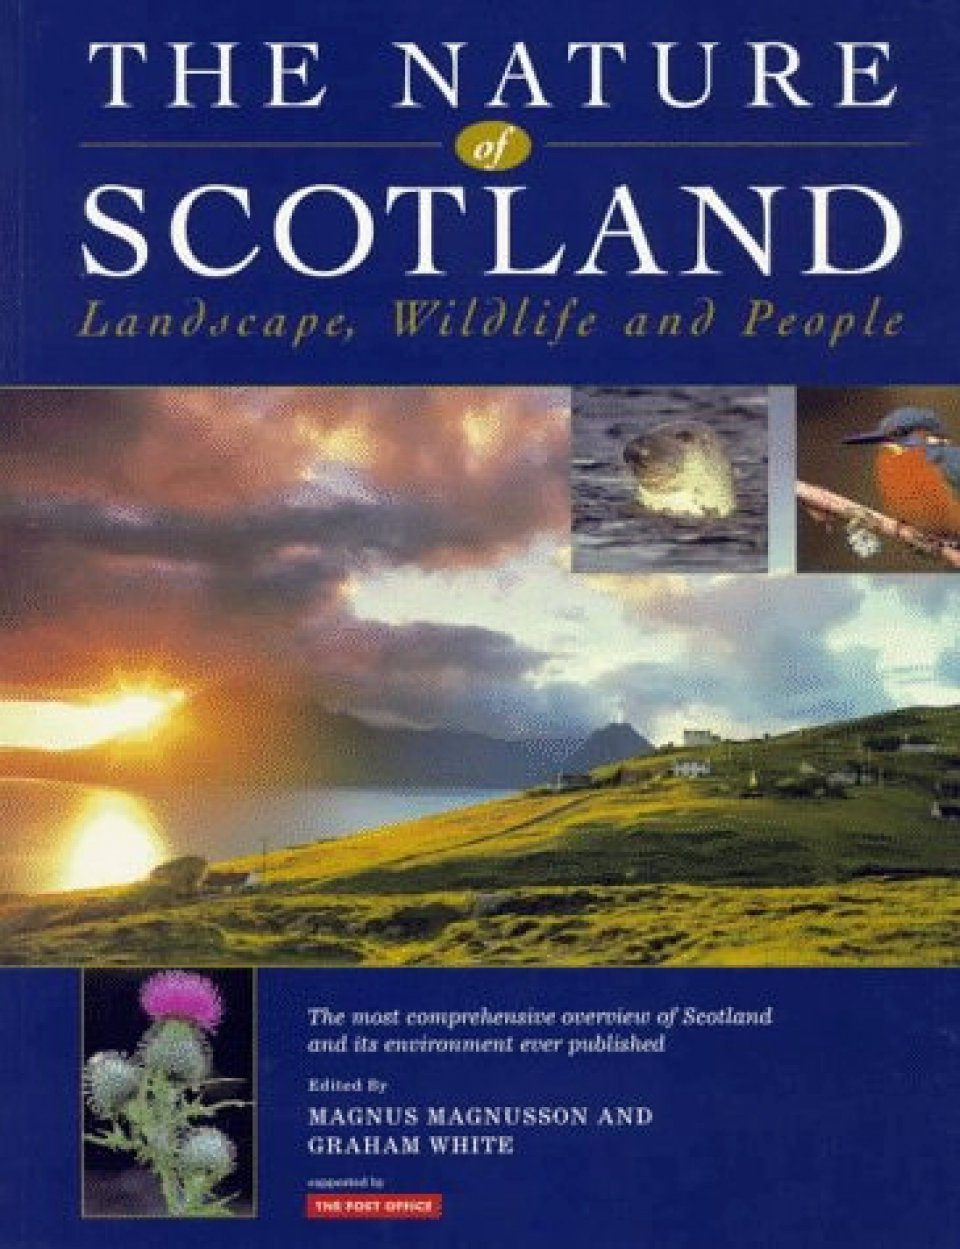 The Nature of Scotland